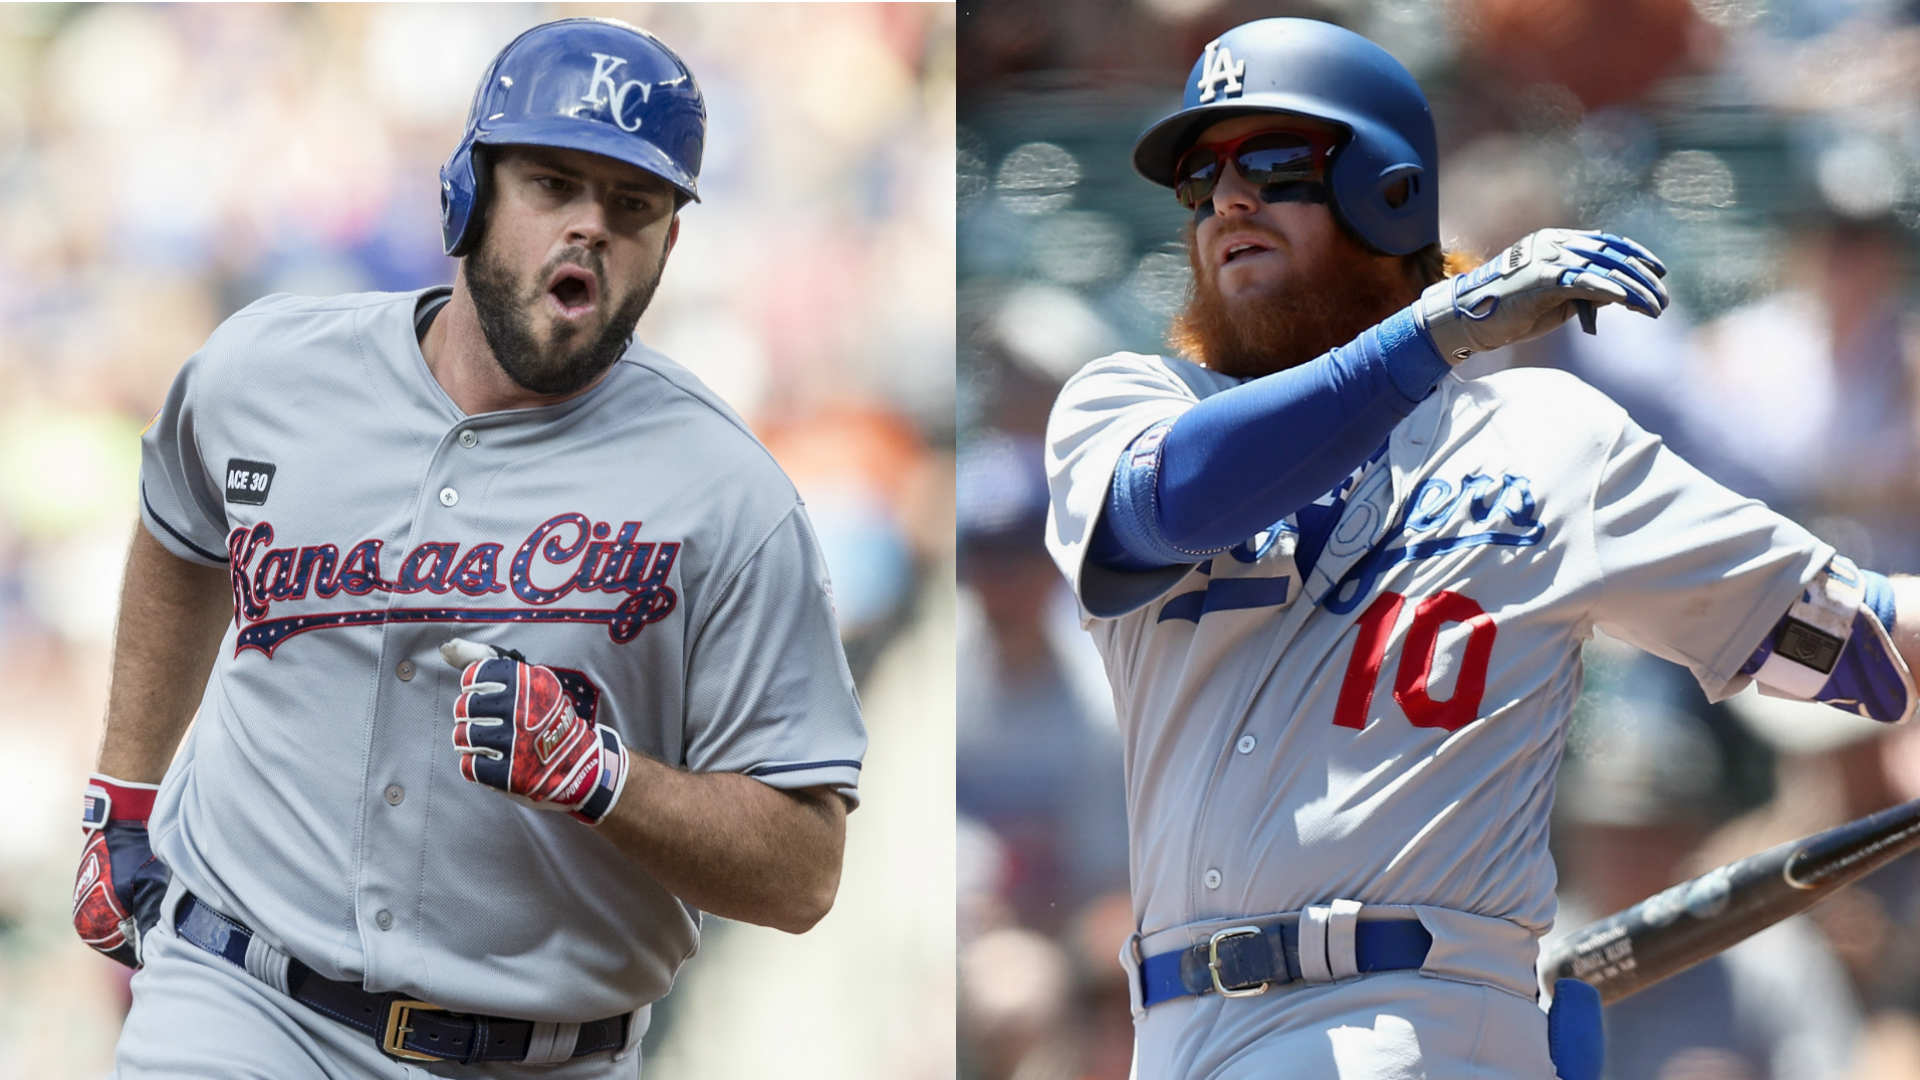 Moustakas headed to All-Star Game after winning Final Vote